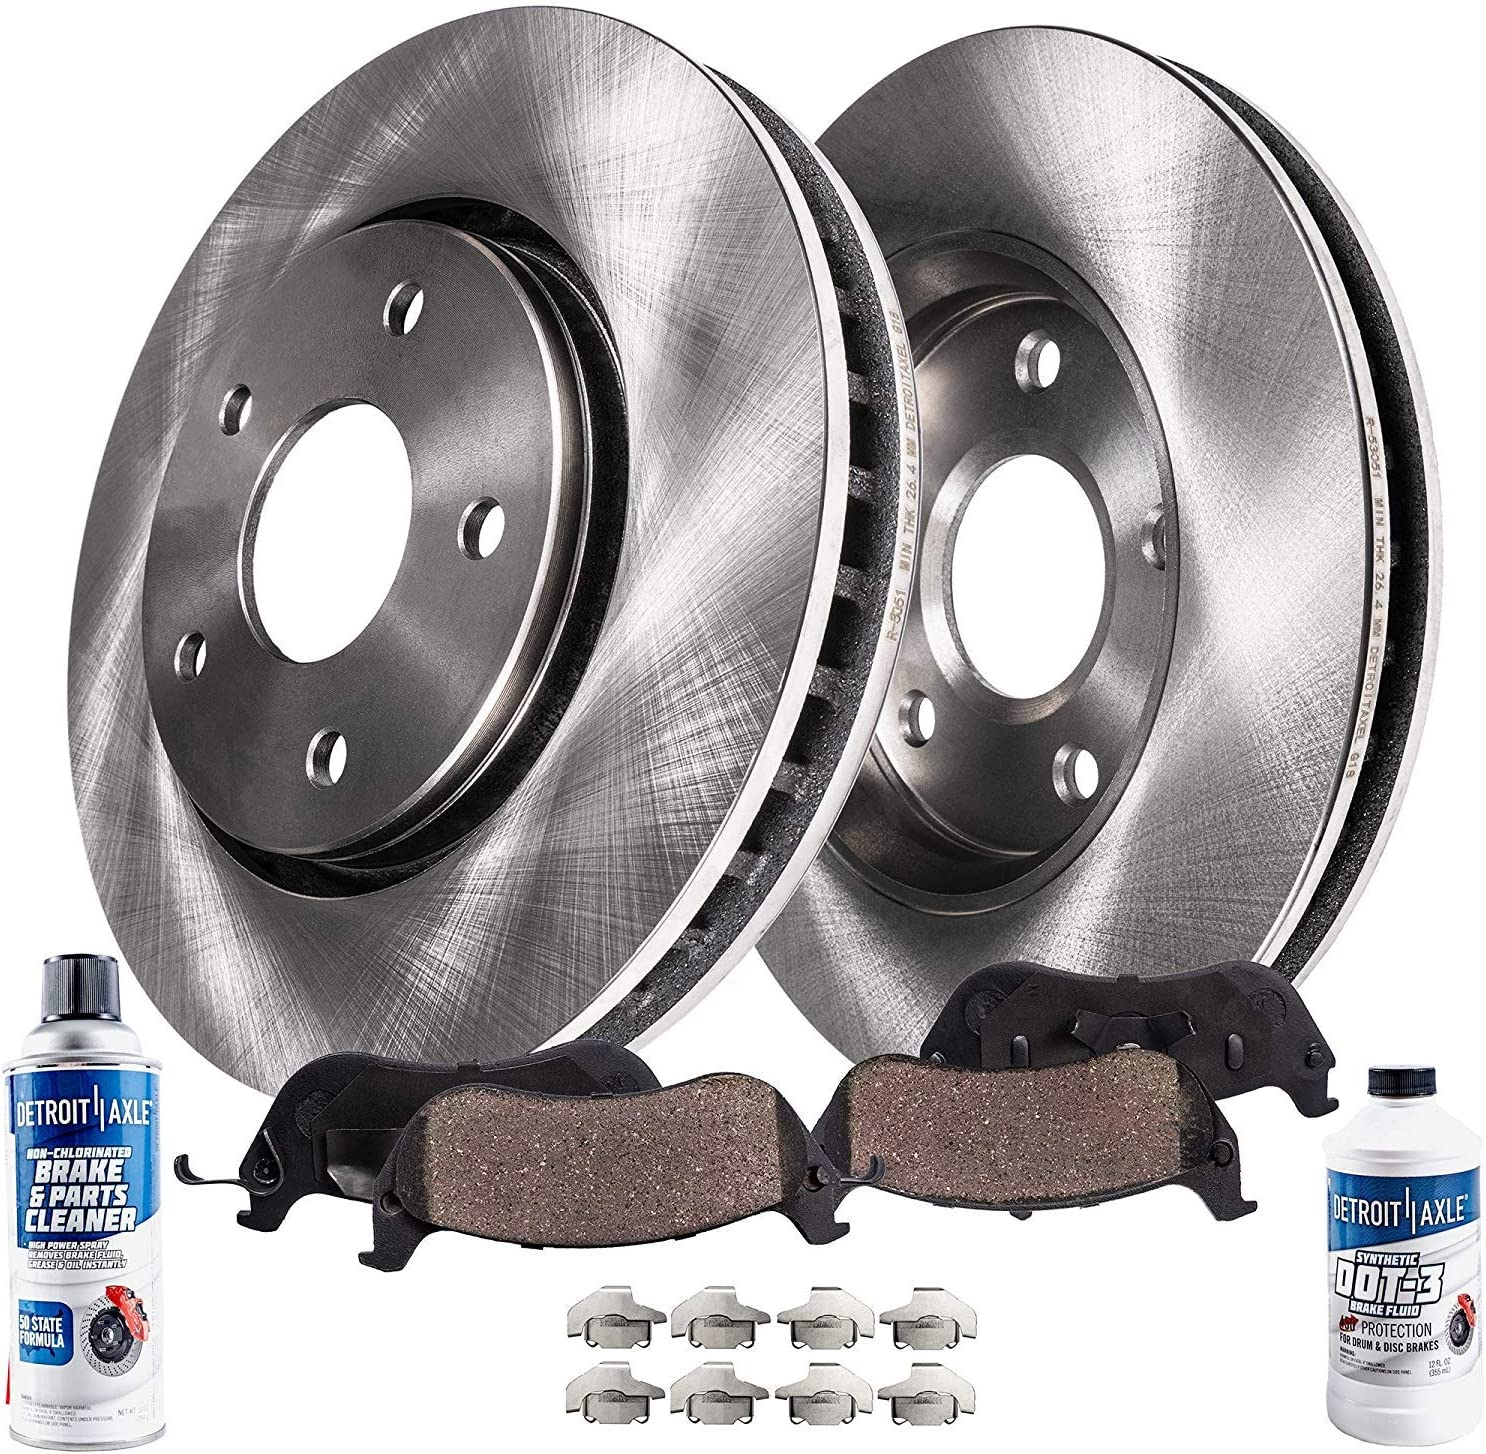 2011 2012 2013 Mazda 3 2.0L Max Performance Metallic Brake Pads F+R